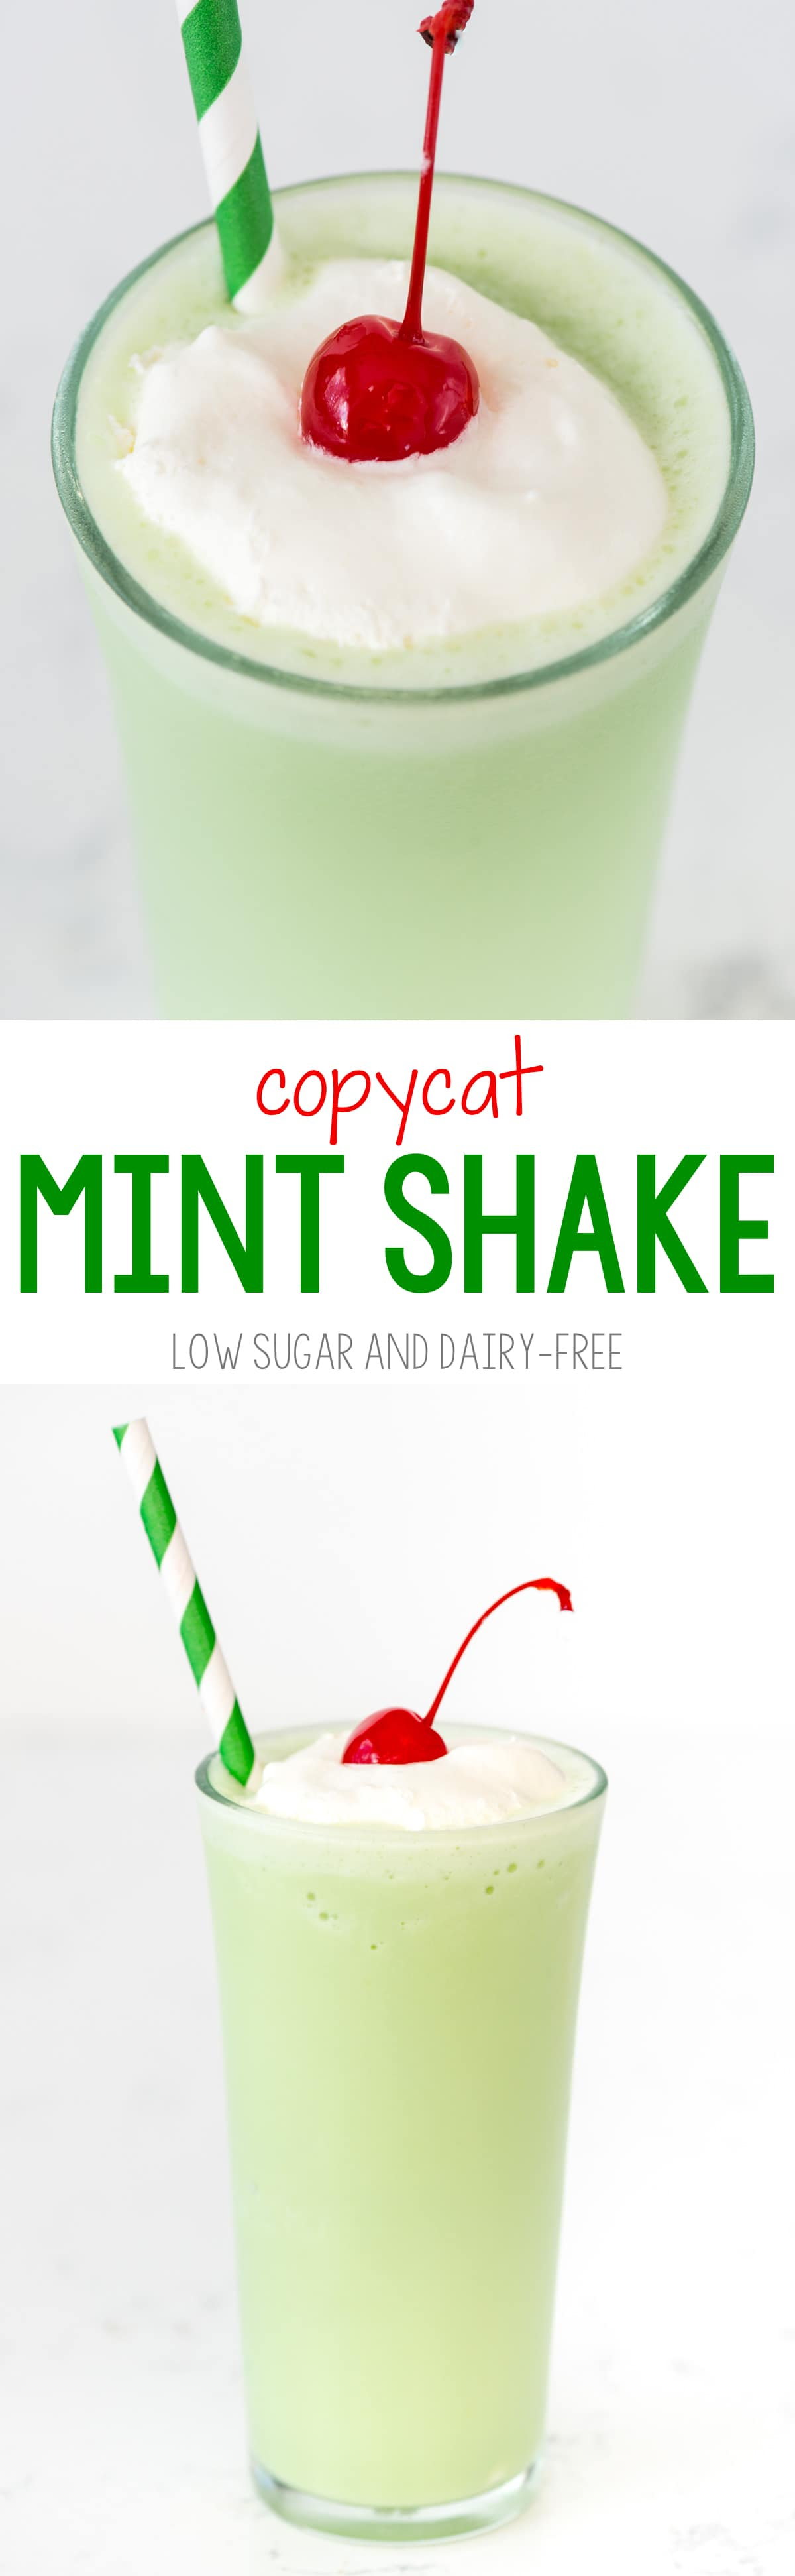 Copycat Mint Shake - this popular copycat shake recipe is made dairy-free and lower sugar! It's an EASY milkshake recipe that is perfect for mint lovers.